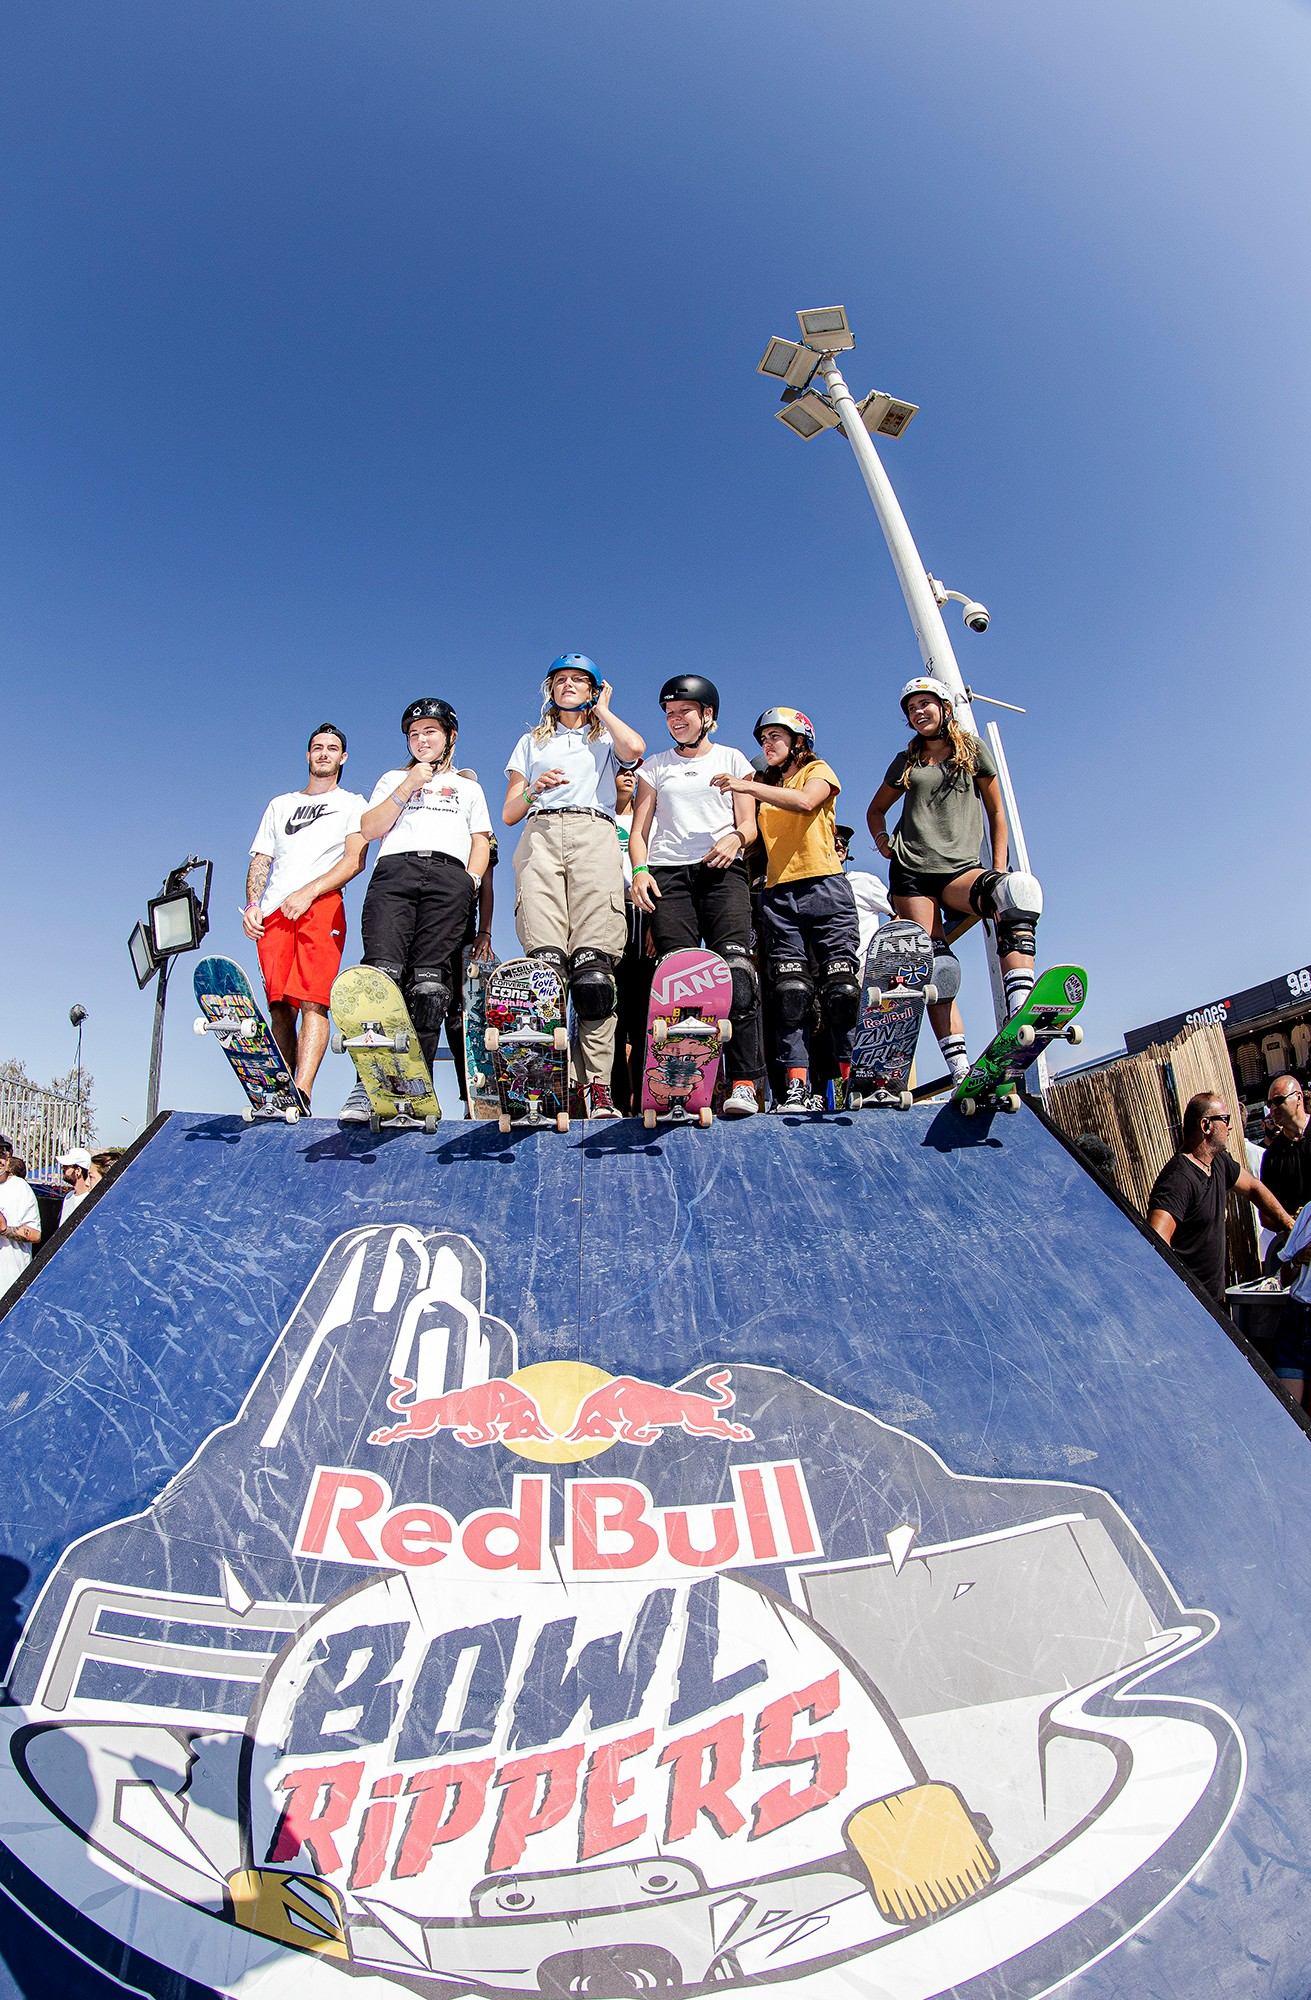 Red Bull Rippers Marseille Roll in Ramp